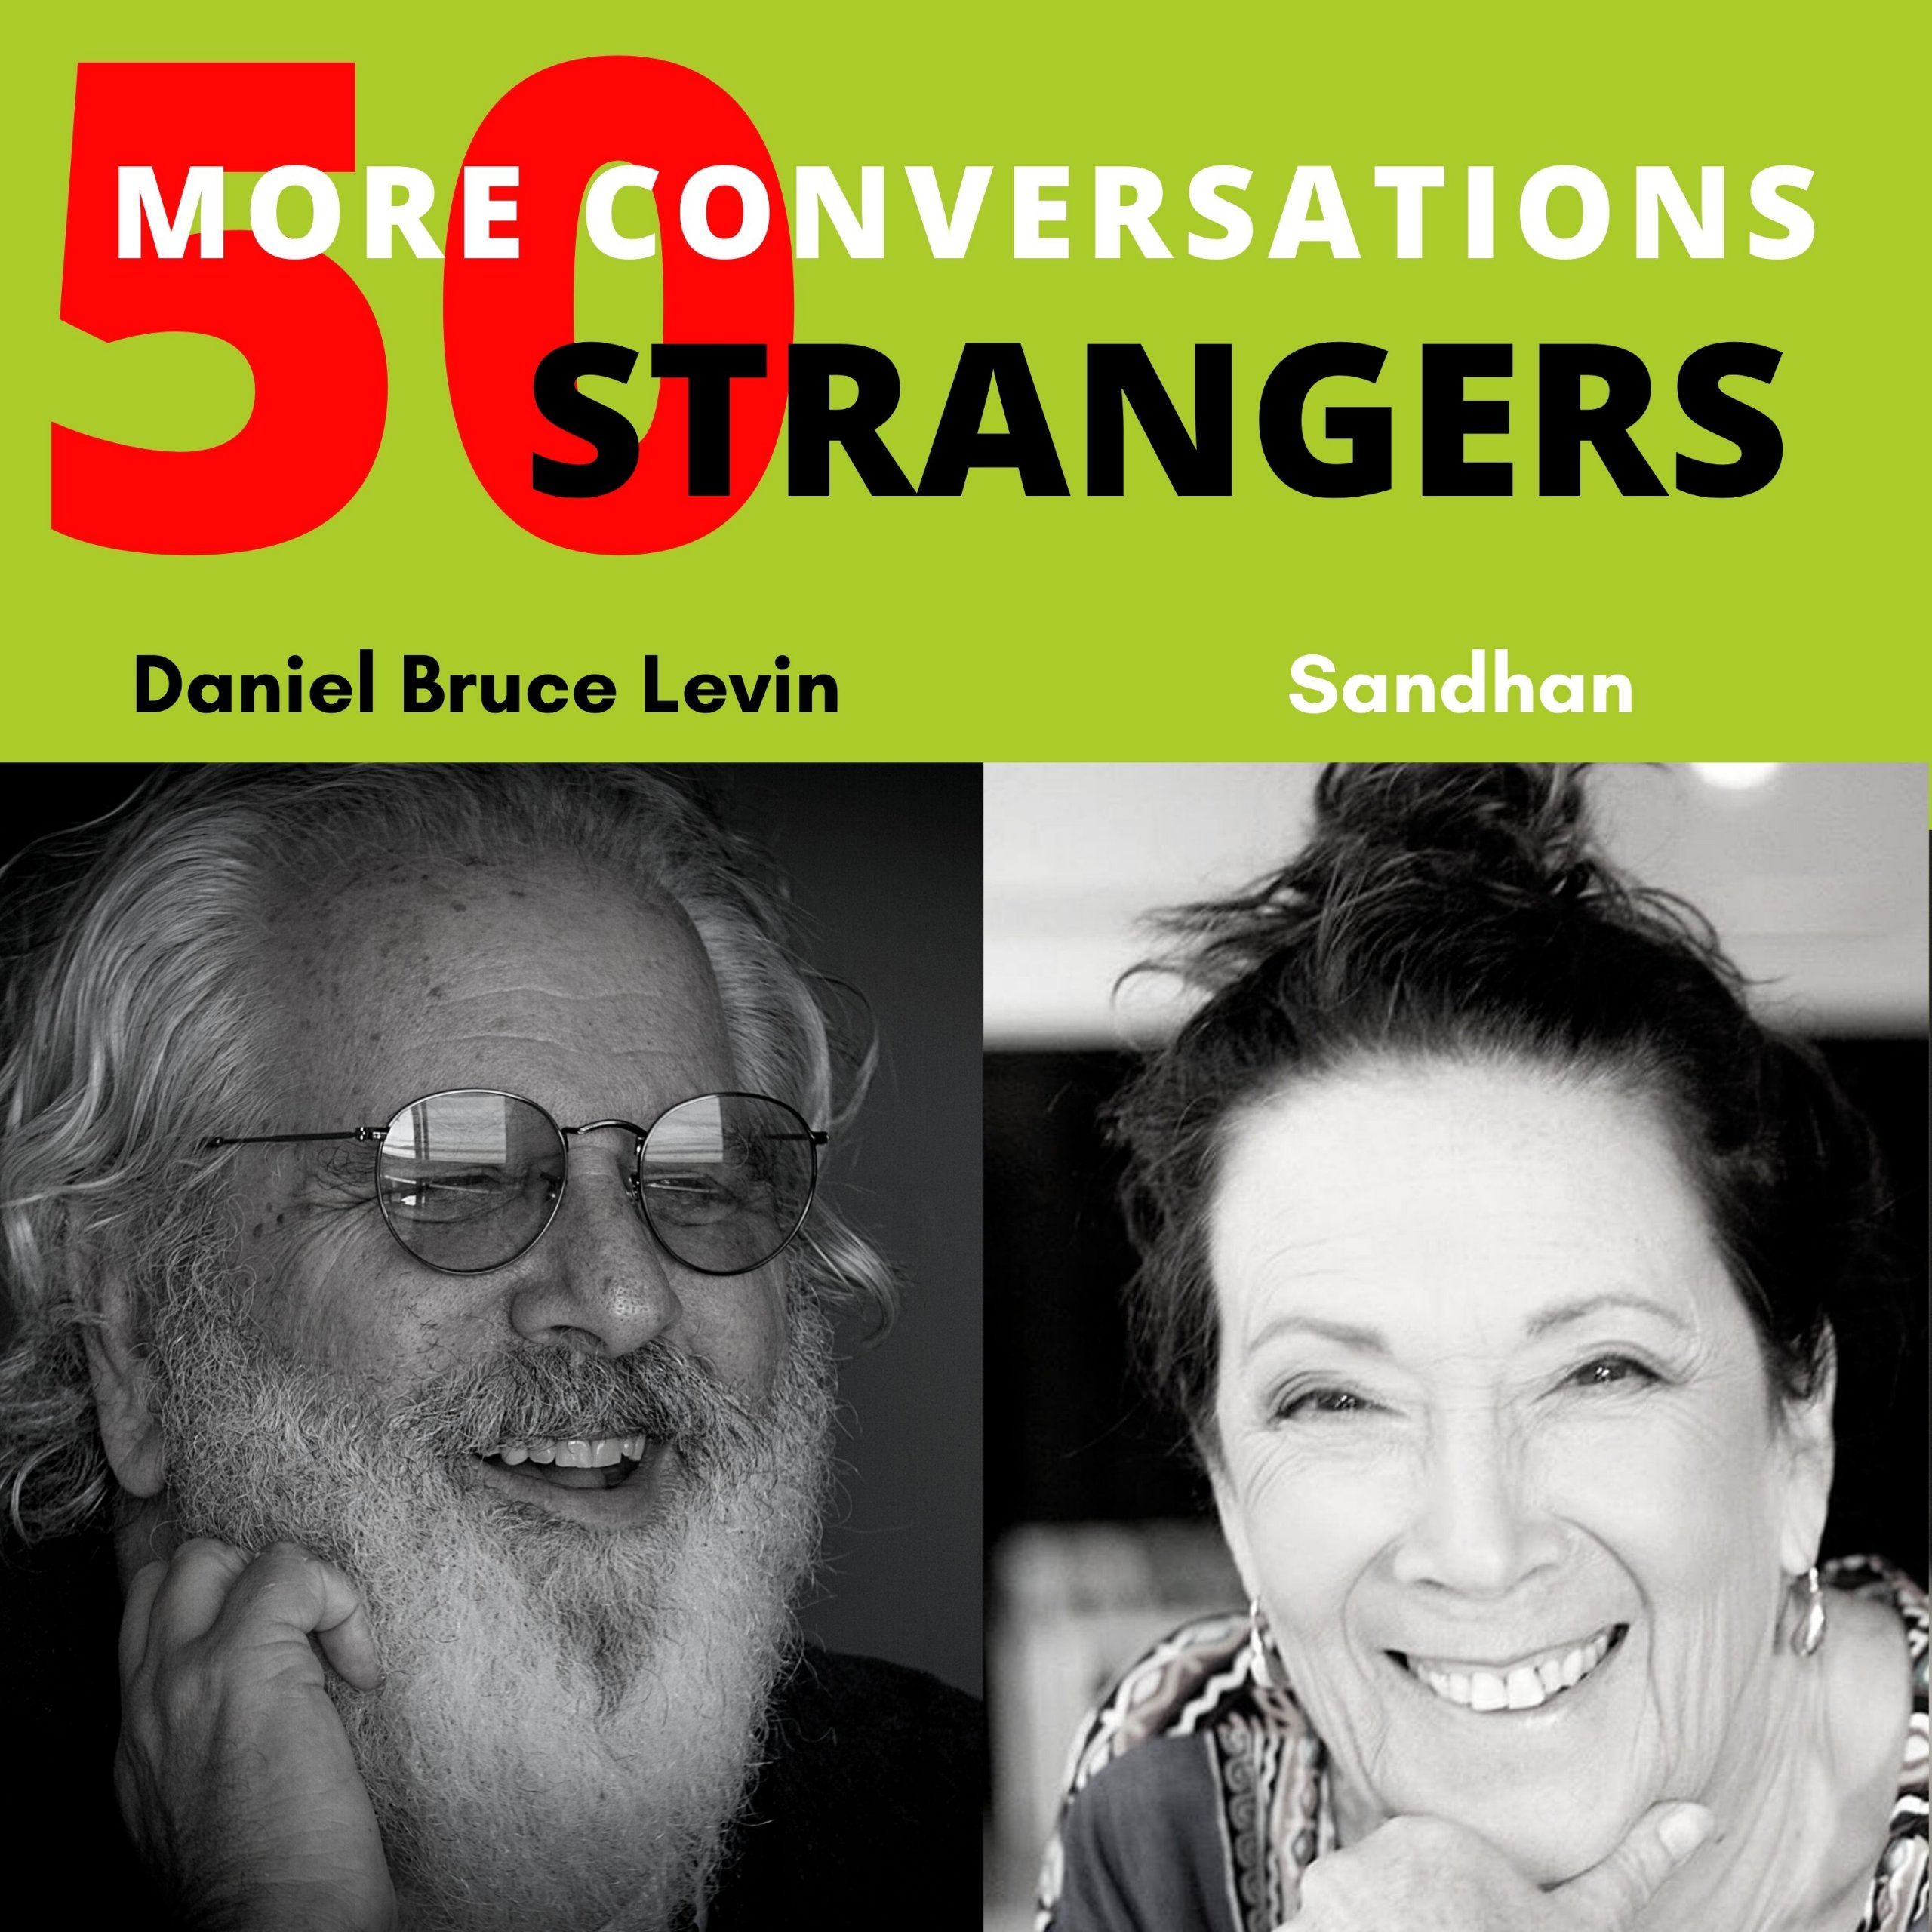 50 More Conversations with 50 More Strangers with Sandhan